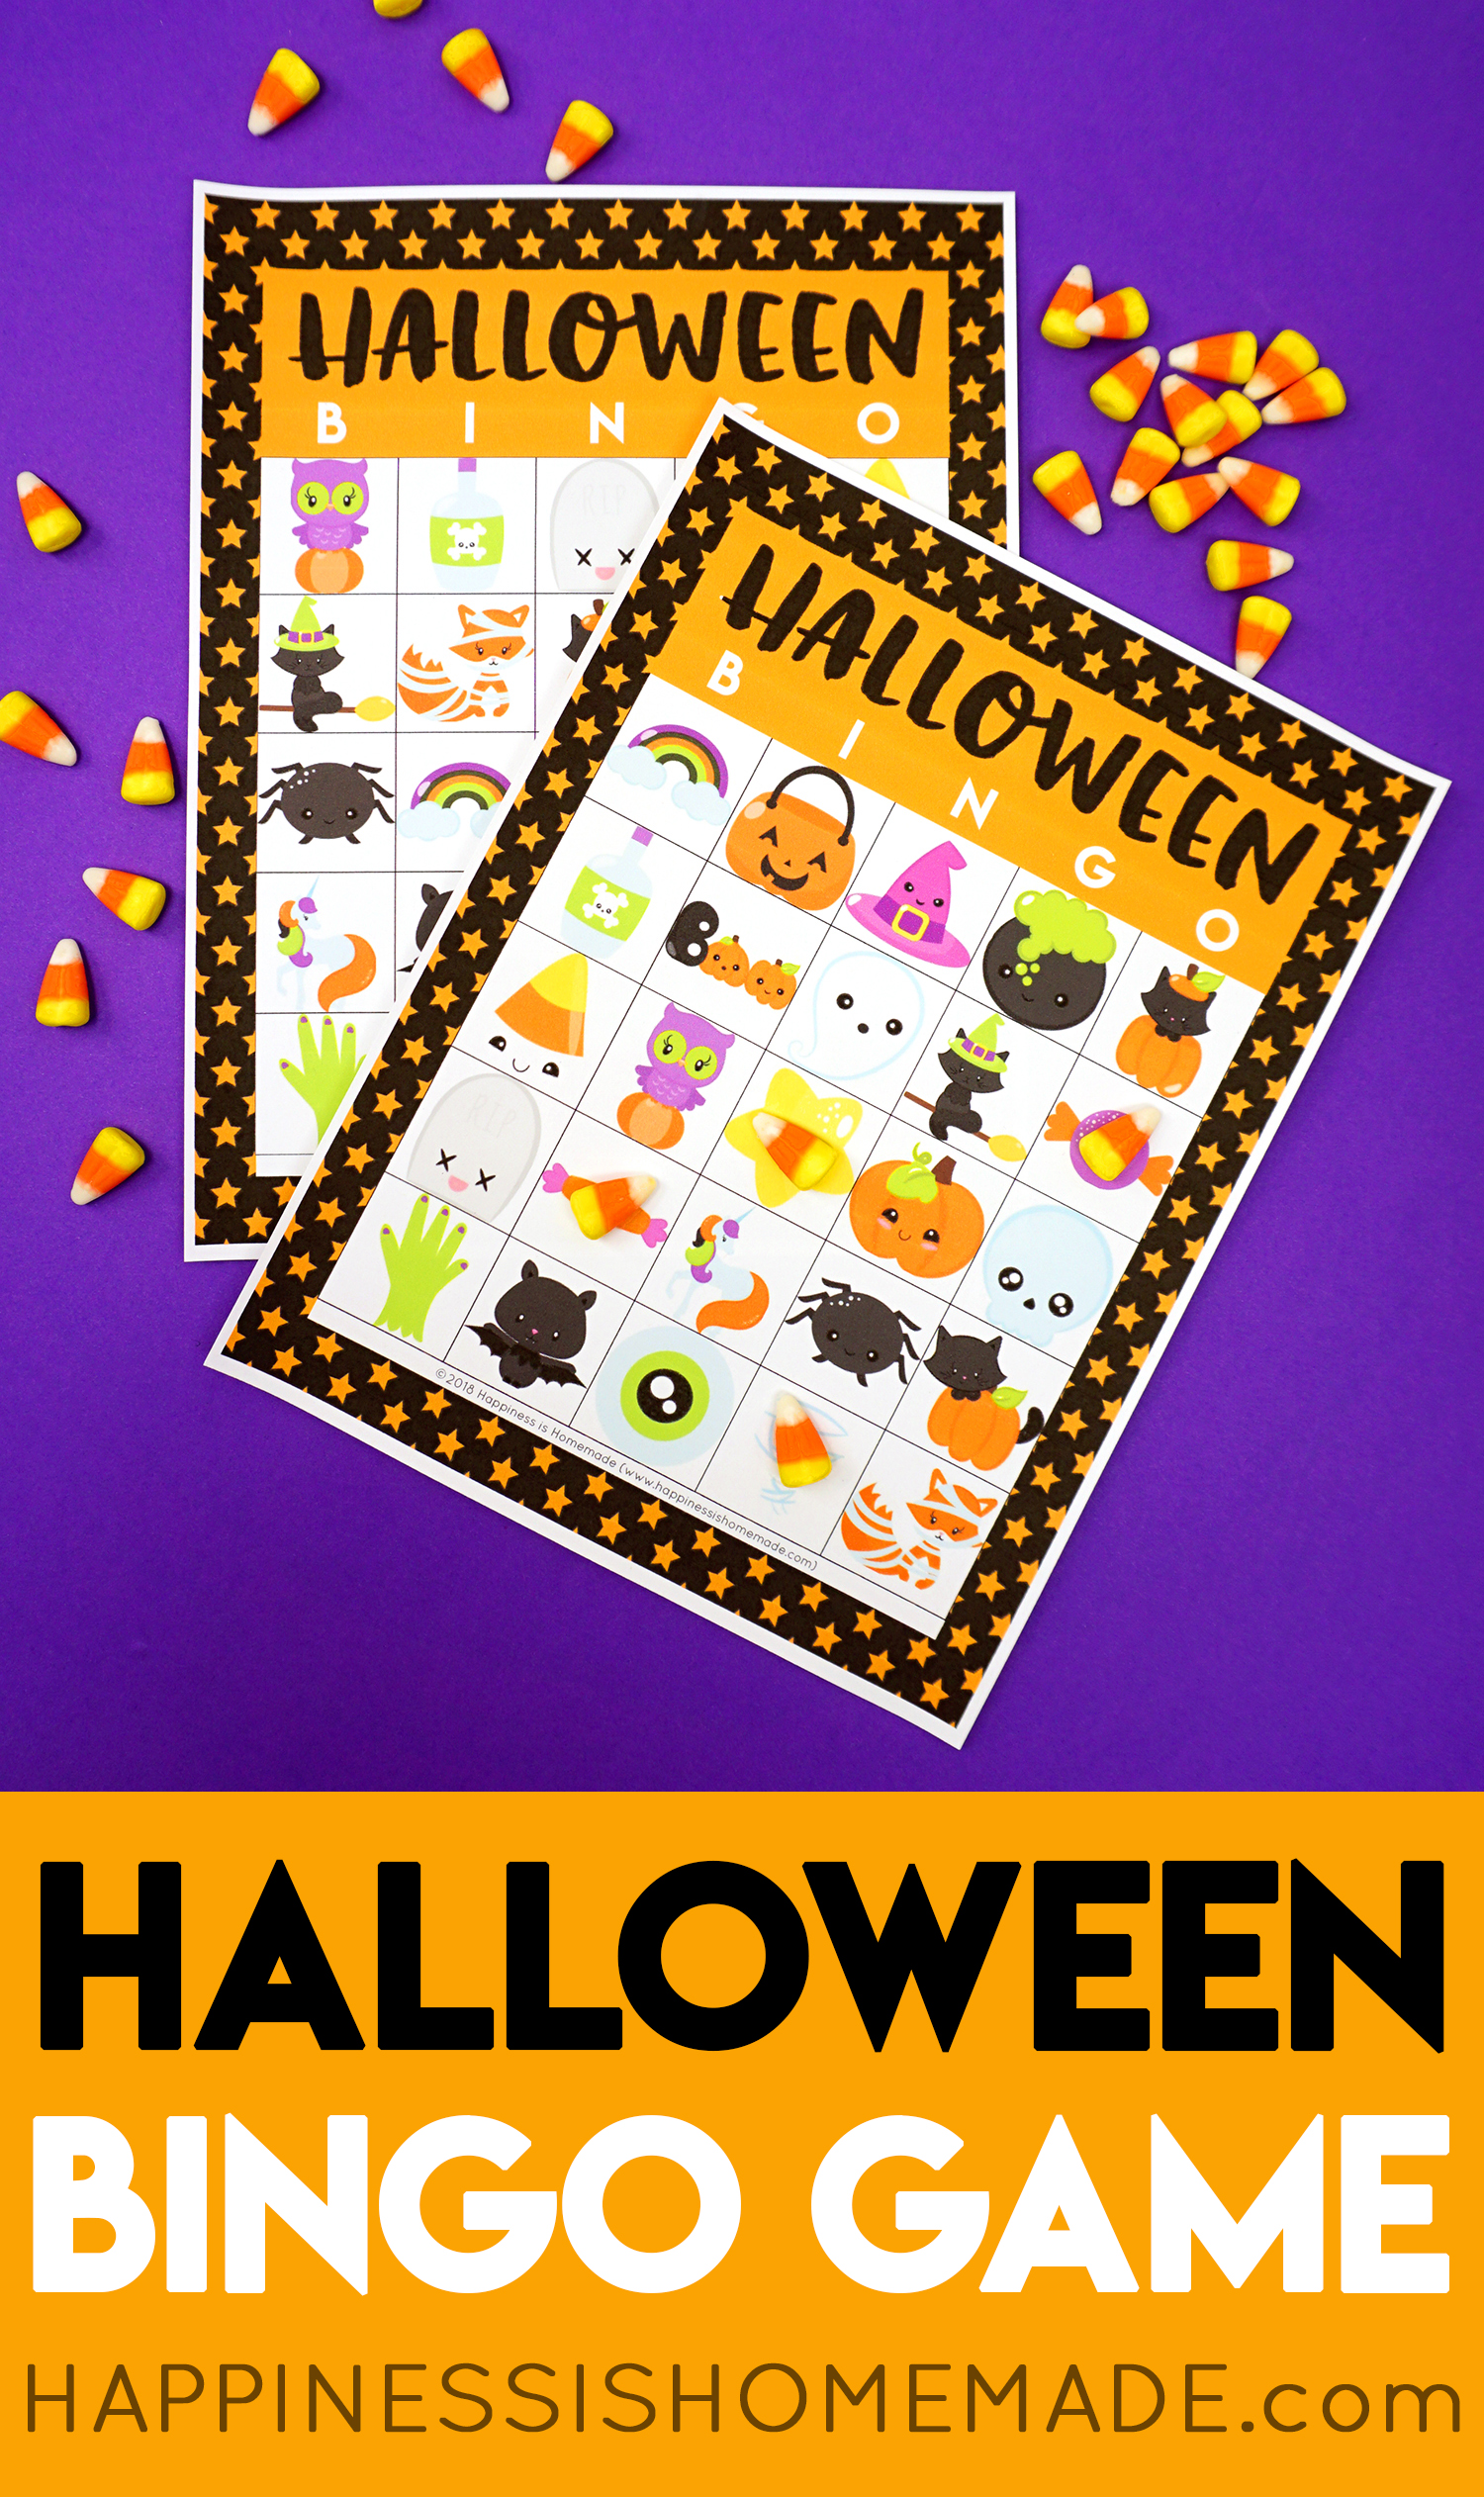 photograph regarding Printable Halloween Bingo Cards known as Printable Halloween Bingo Playing cards - Contentment is Do-it-yourself